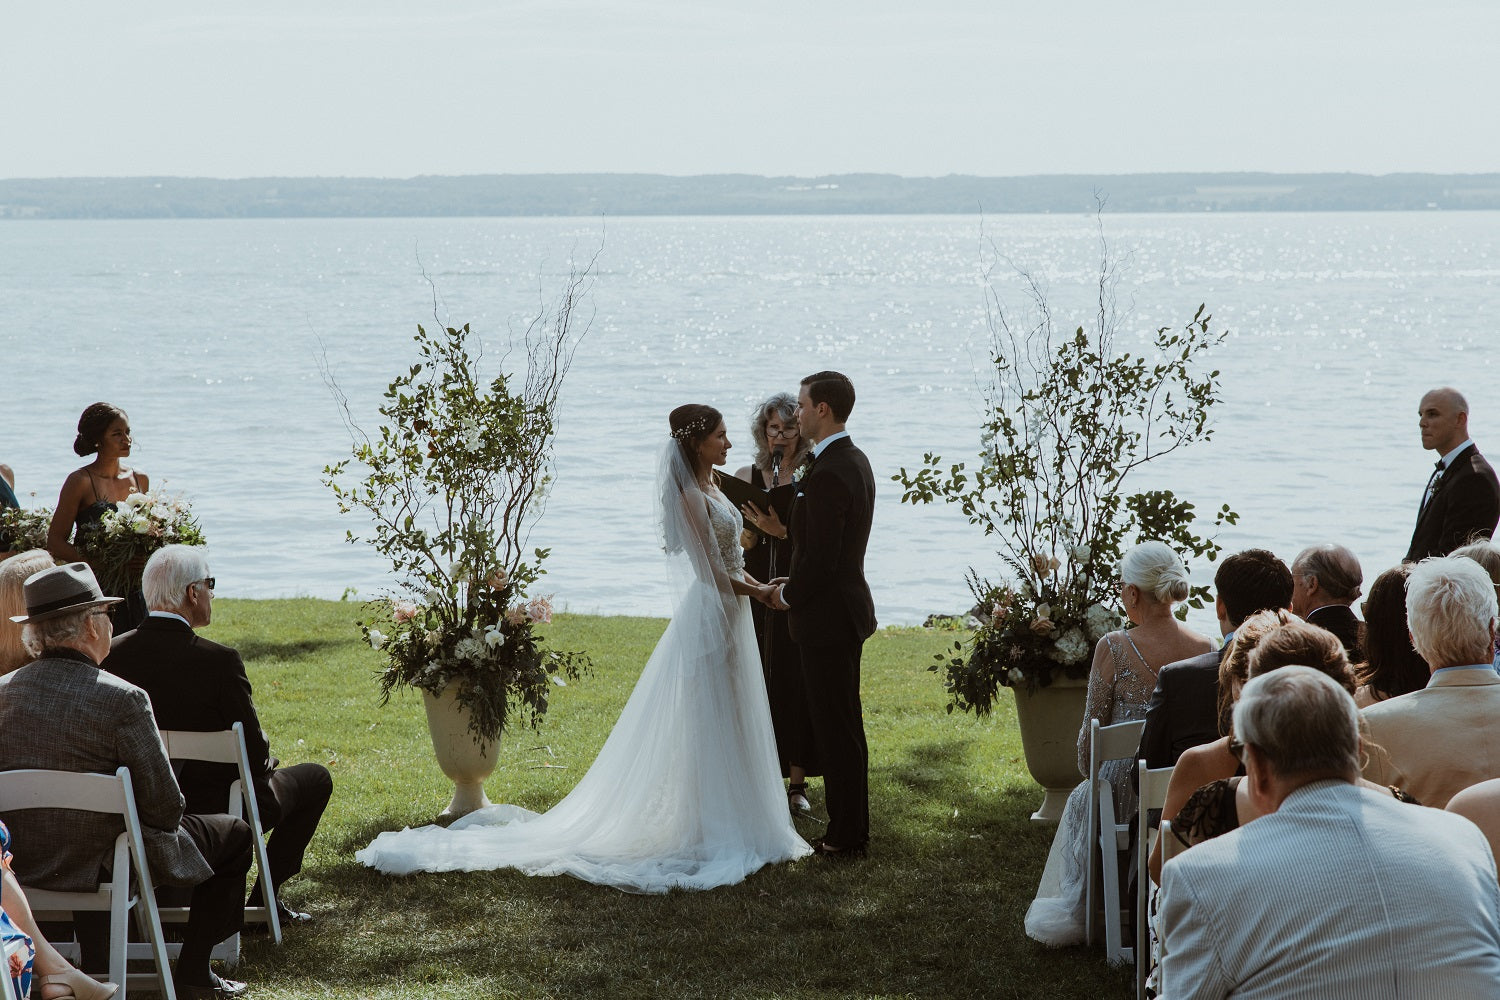 Inns of aurora water front ceremony